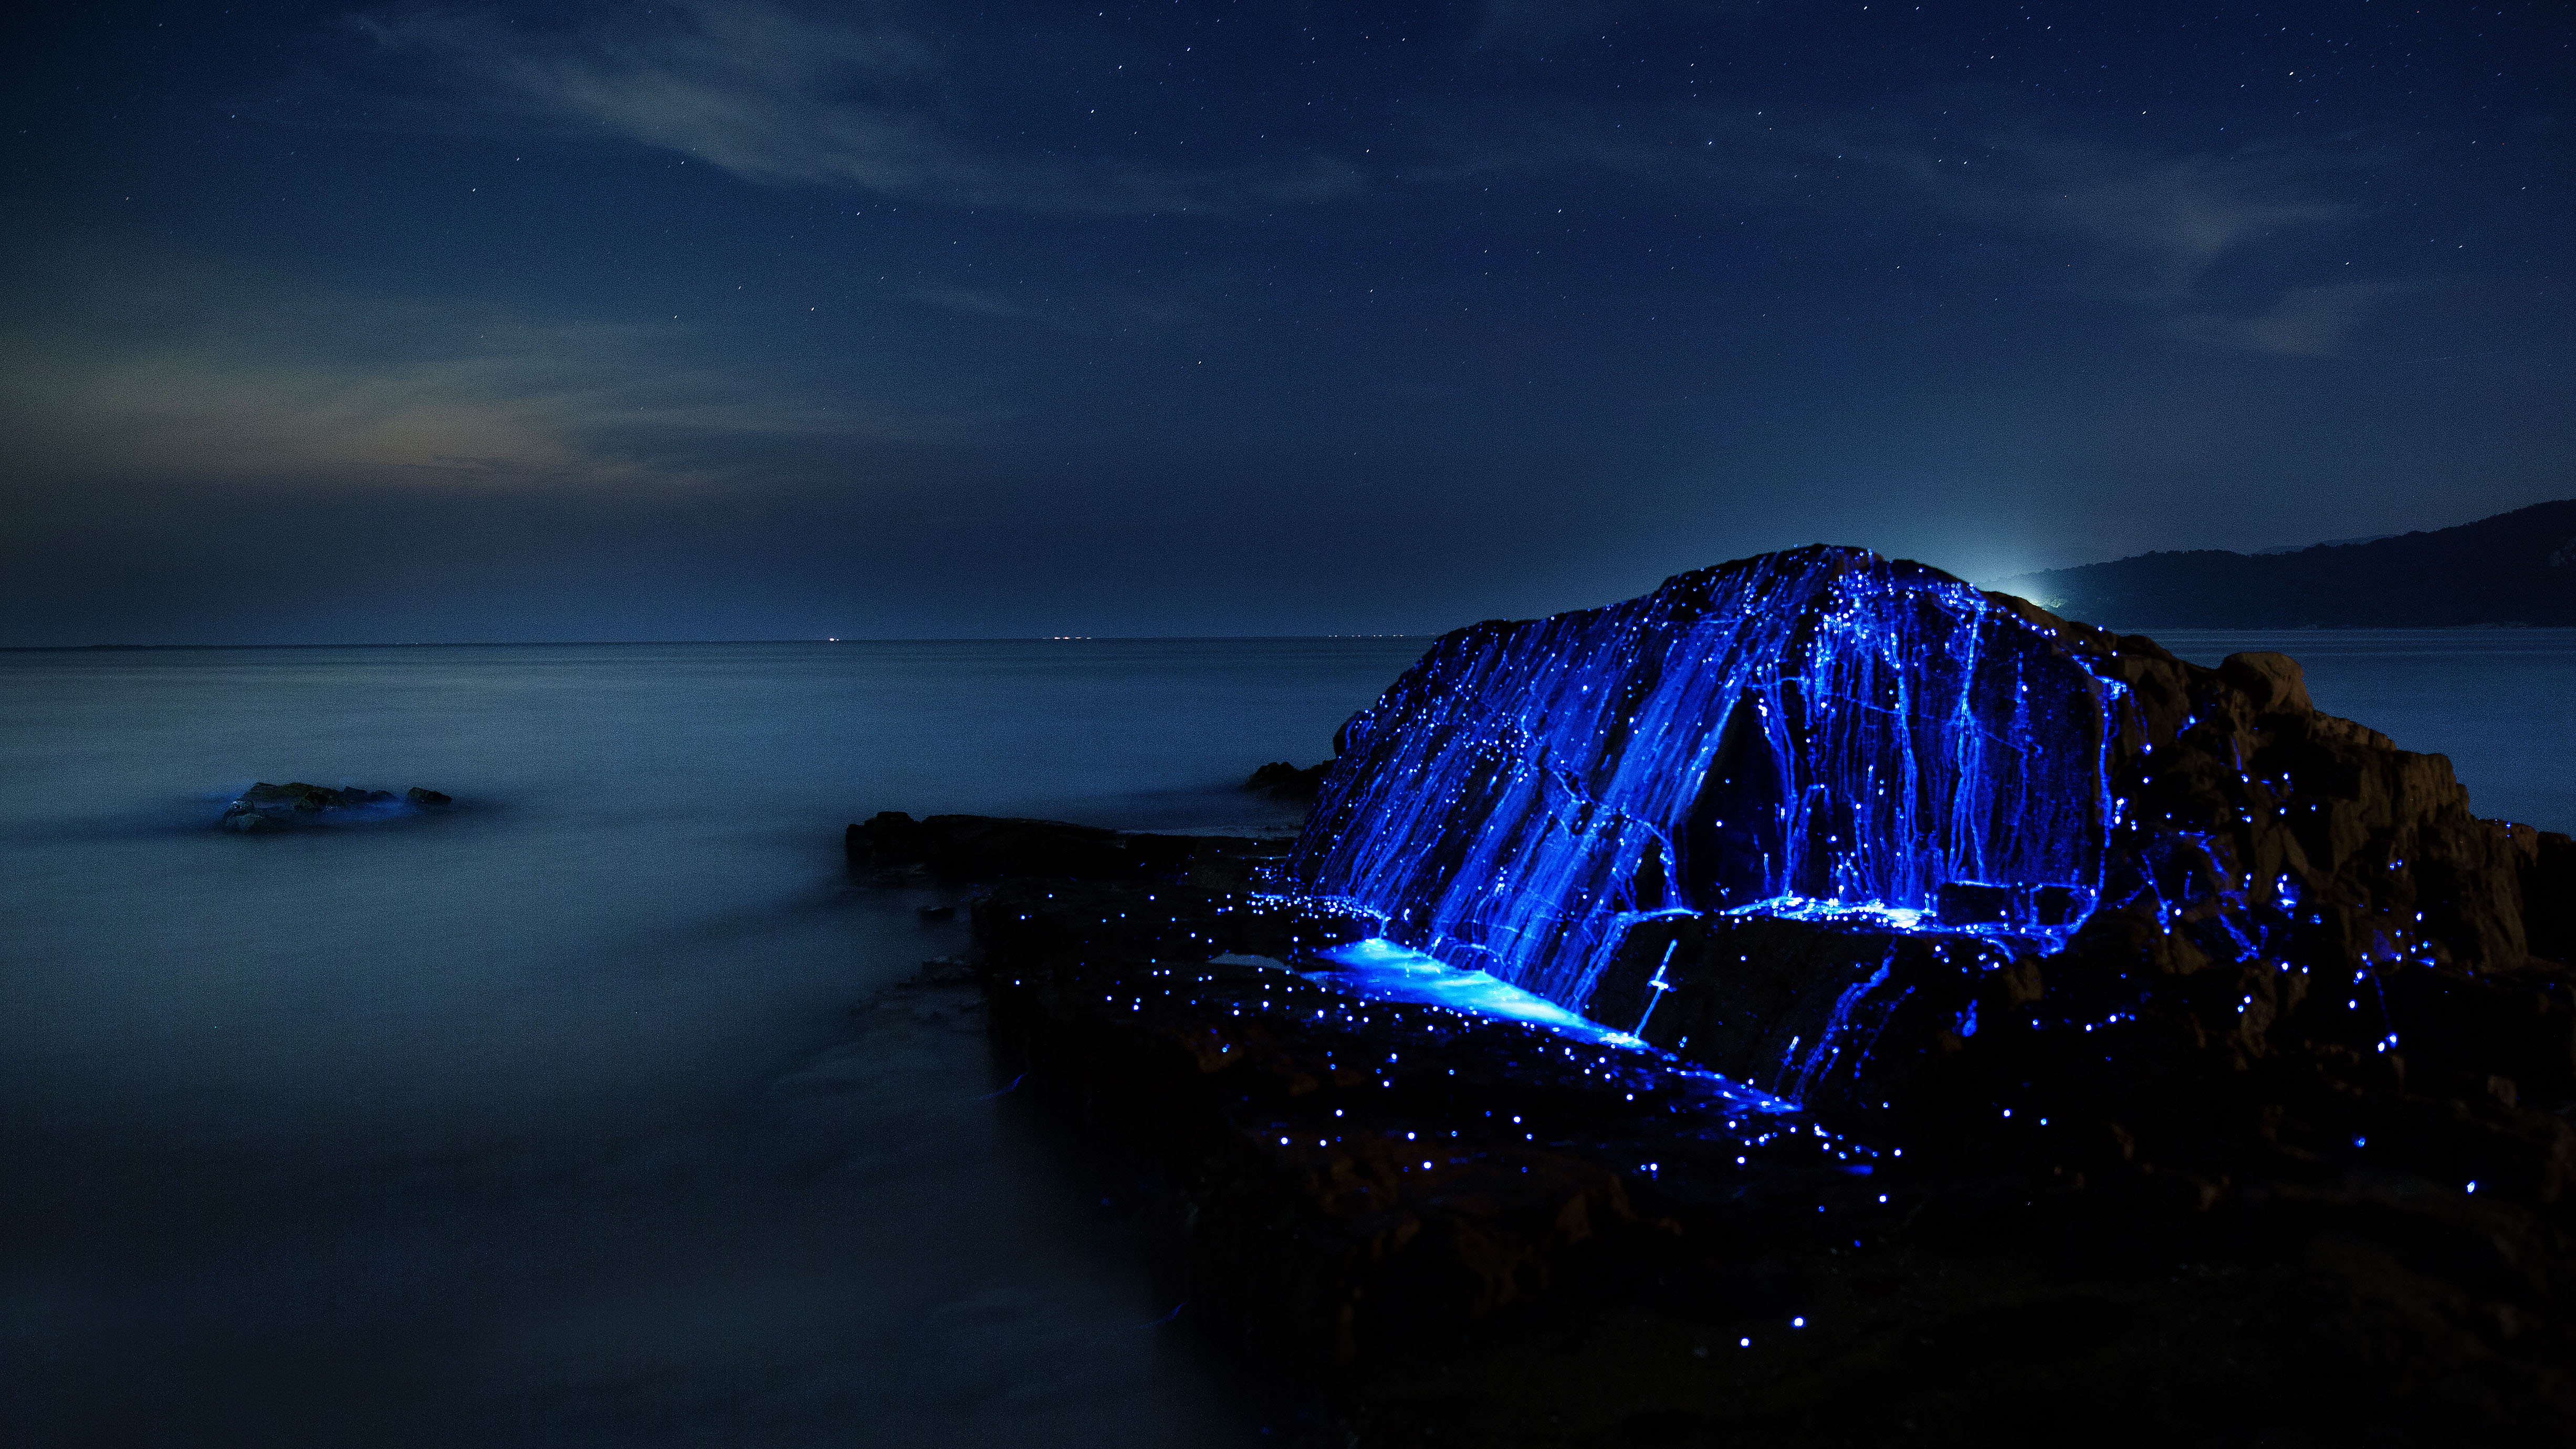 Shrimp galaxy: Sea fireflies glow after being placed on a rock in Okayama Prefecture. | PHOTOS BY TREVOR WILLIAMS, TIM CLEMINSON, JONATHAN GALIONE